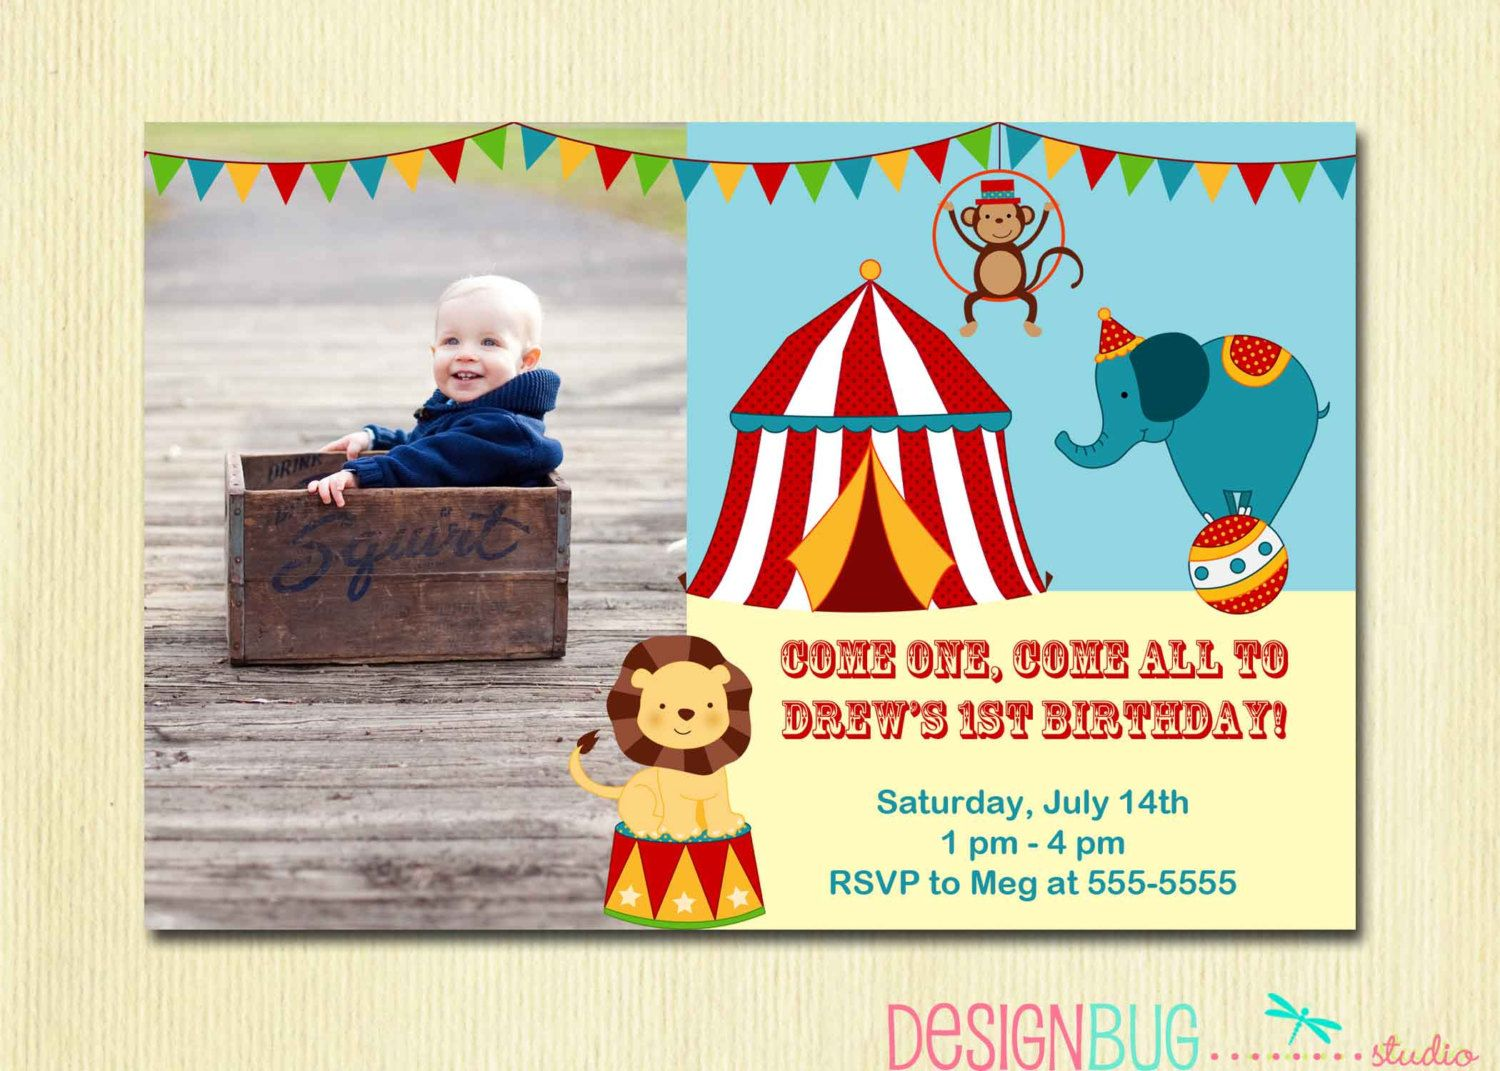 Best 25 Circus birthday invitations ideas – One Year Old Birthday Invitation